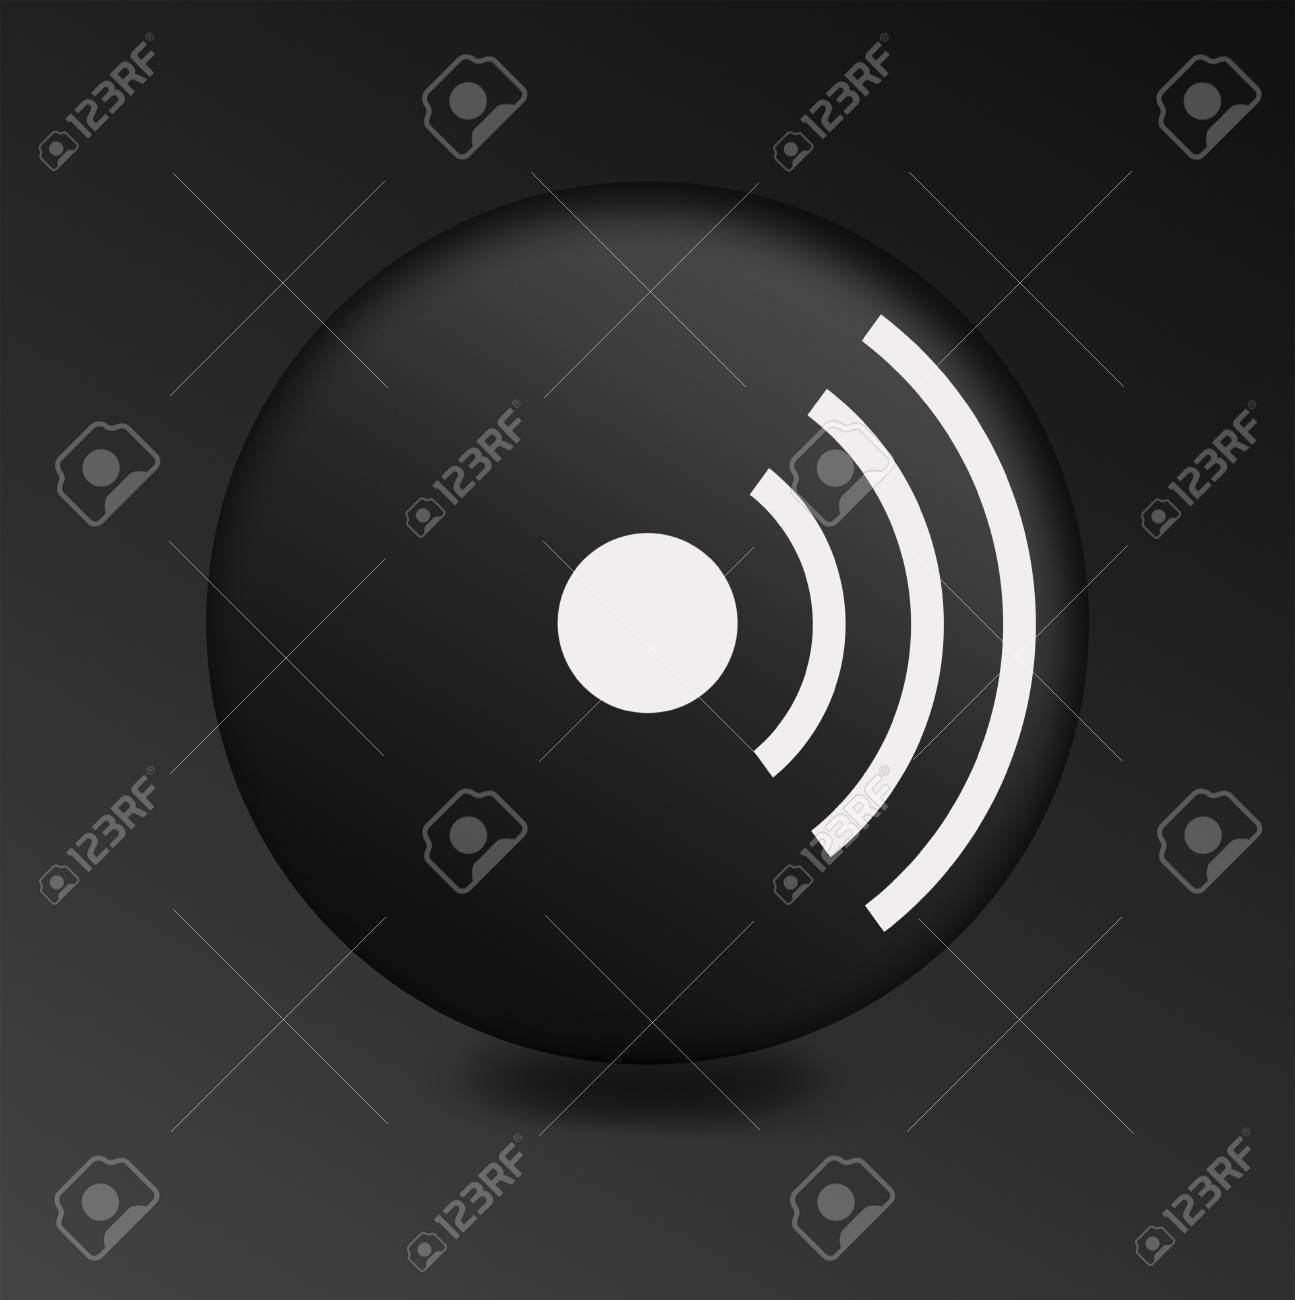 Download 670+ Background Black On Internet HD Terbaru